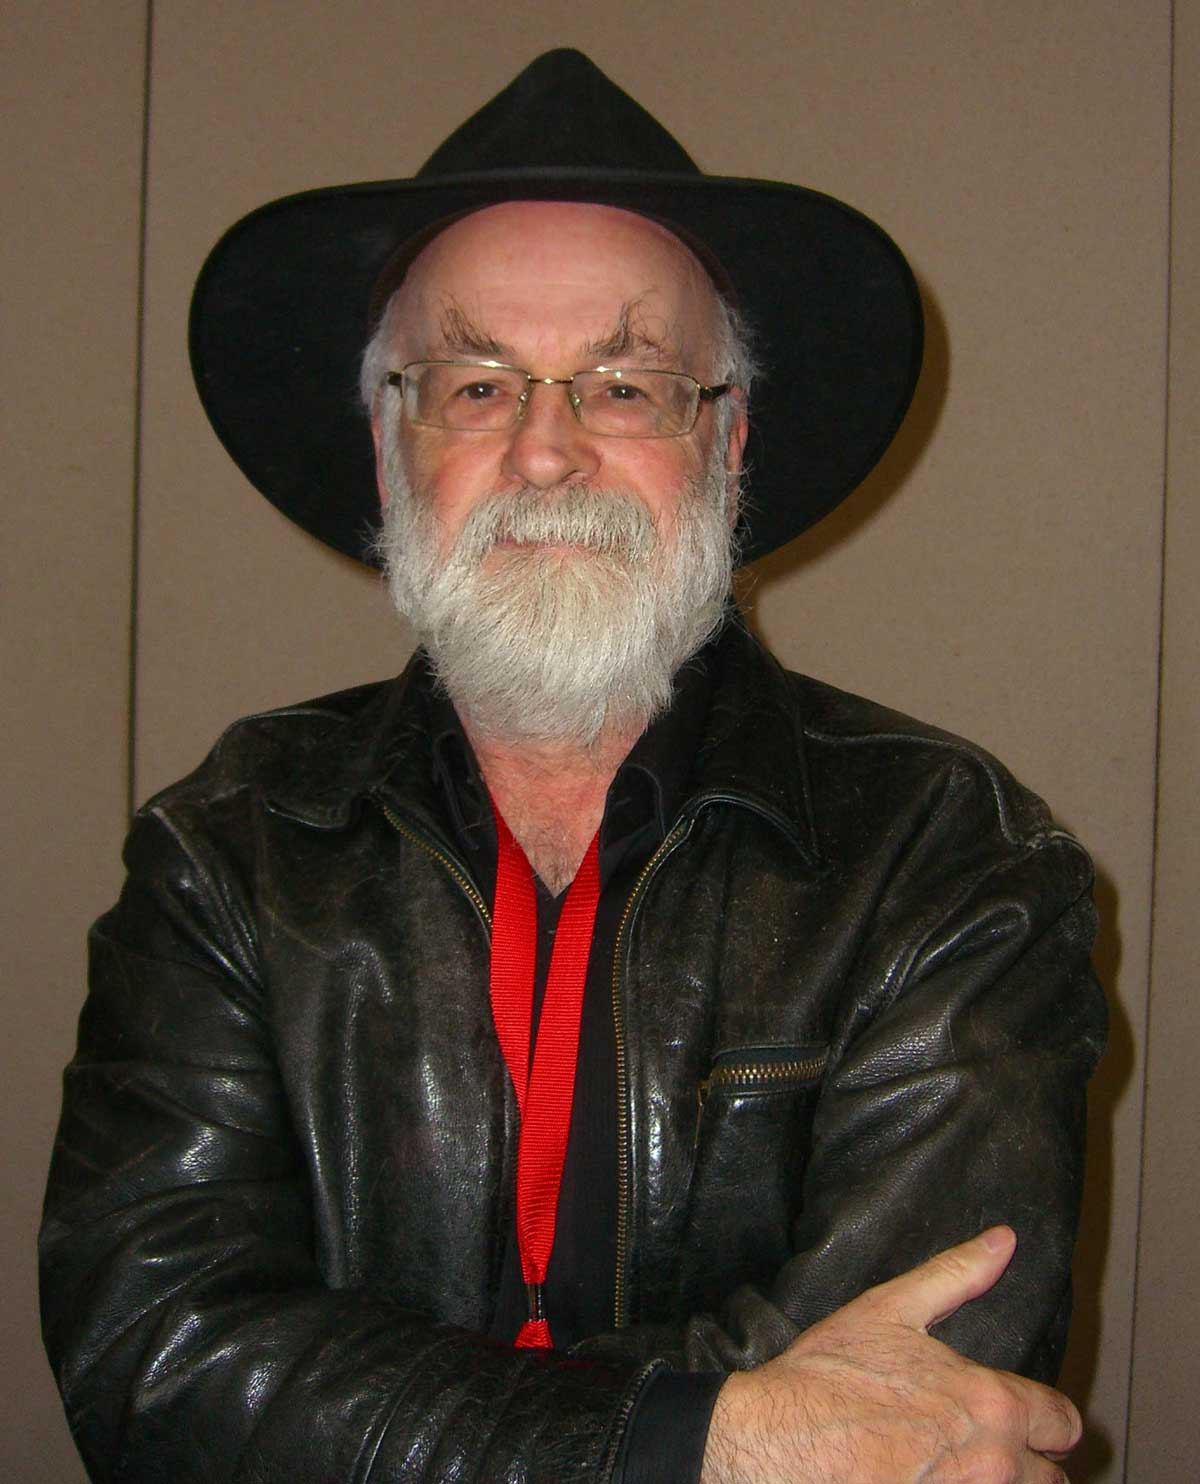 Novelist Terry Pratchett on Day 2 of the 2012 New York Comic Con, Friday October 12, 2012 at the Jacob K. Javits Convention Center in Manhattan Photo: Luigi Novi © Luigi Novi / Wikimedia Commons.